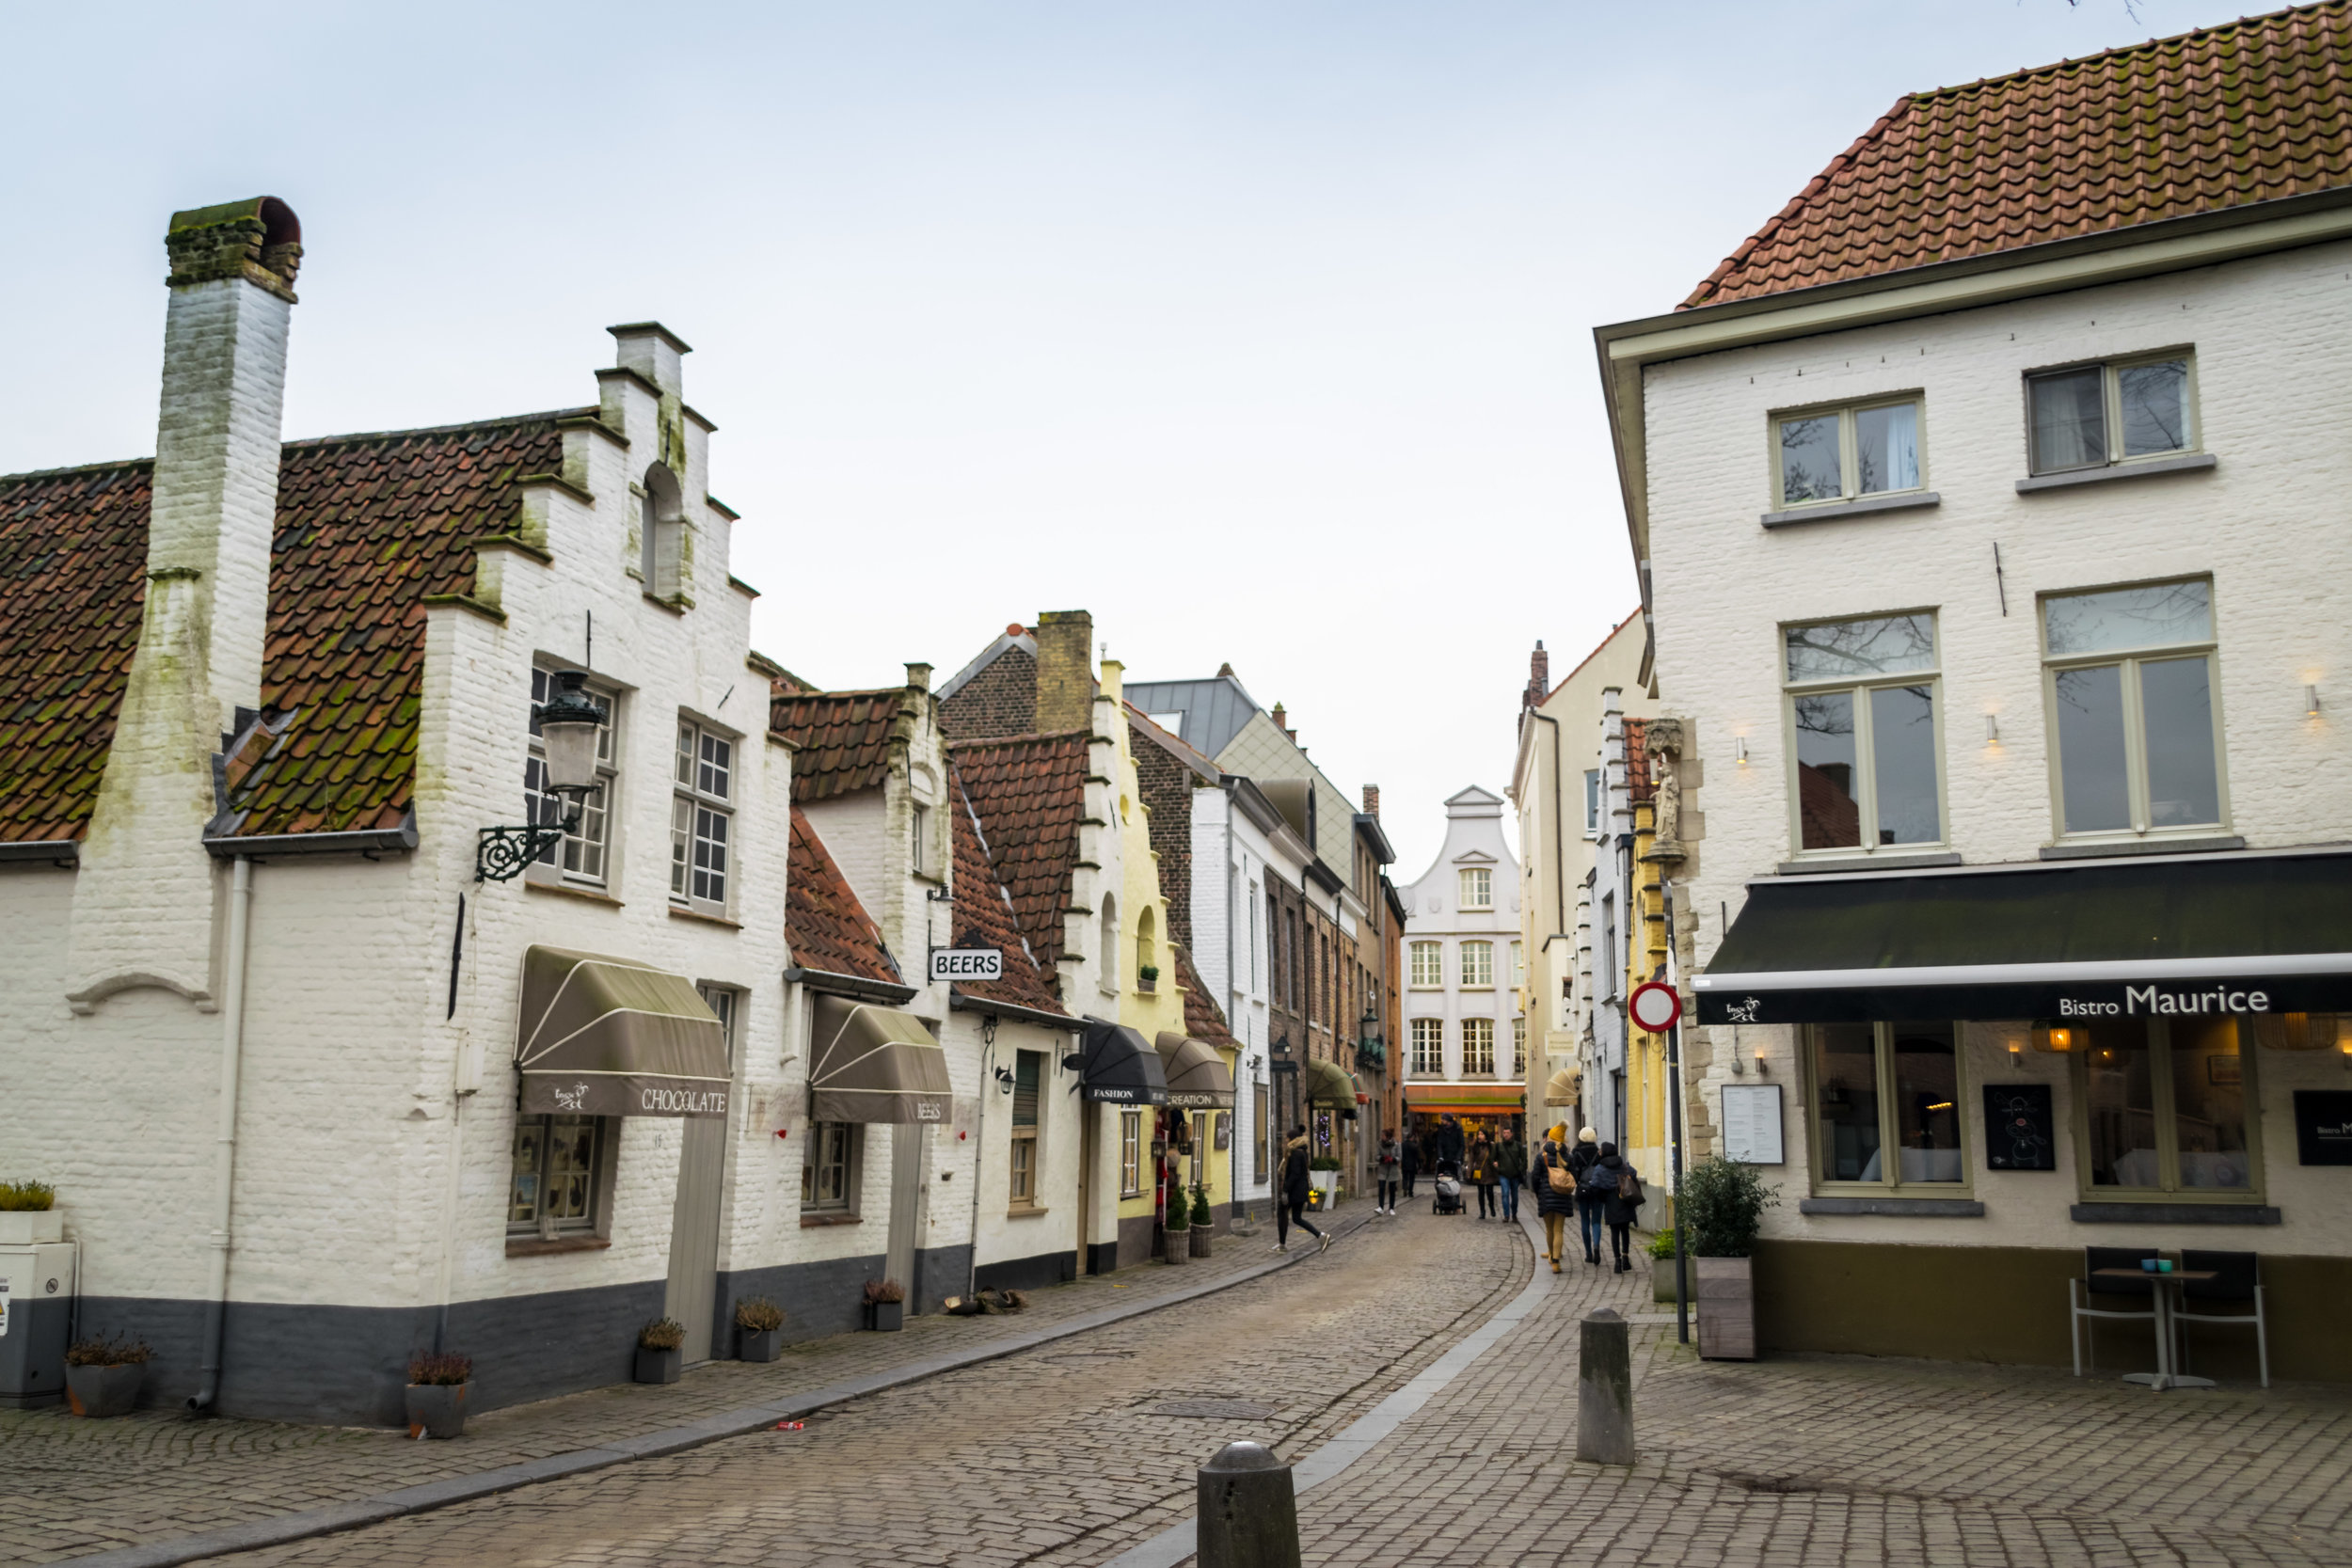 Stoofstraat, the town's red light district in 1453